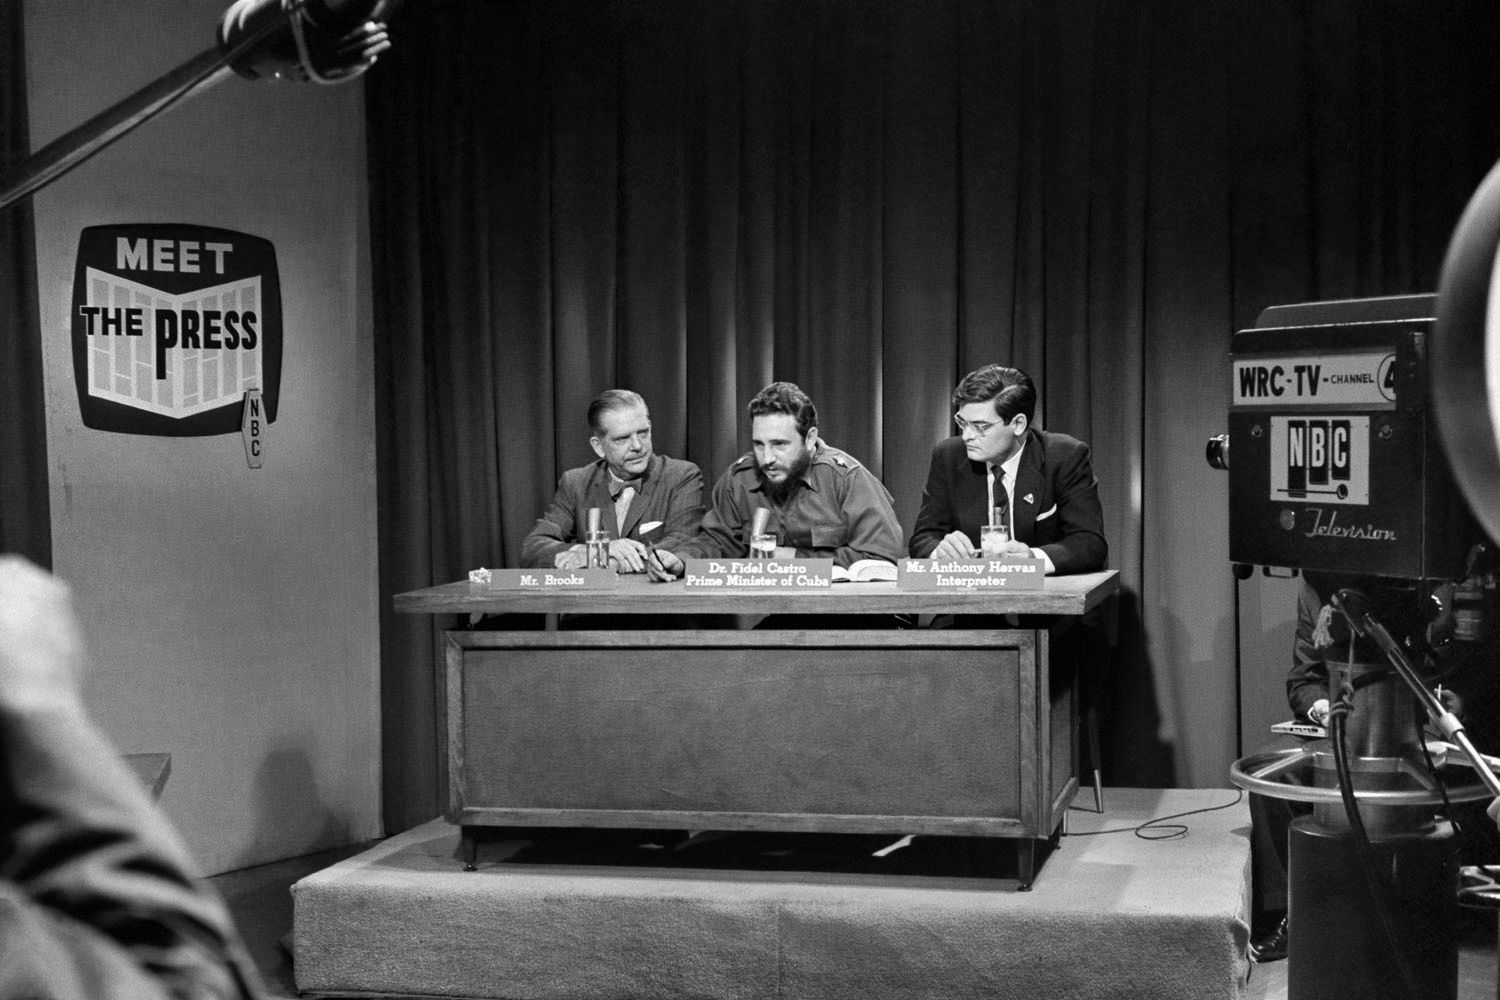 Alberto Korda, Fidel Castro answering questions from journalists on Meet the Press, Washington, ​Sunday, April 19, 1959, Sous Les Etoiles Gallery